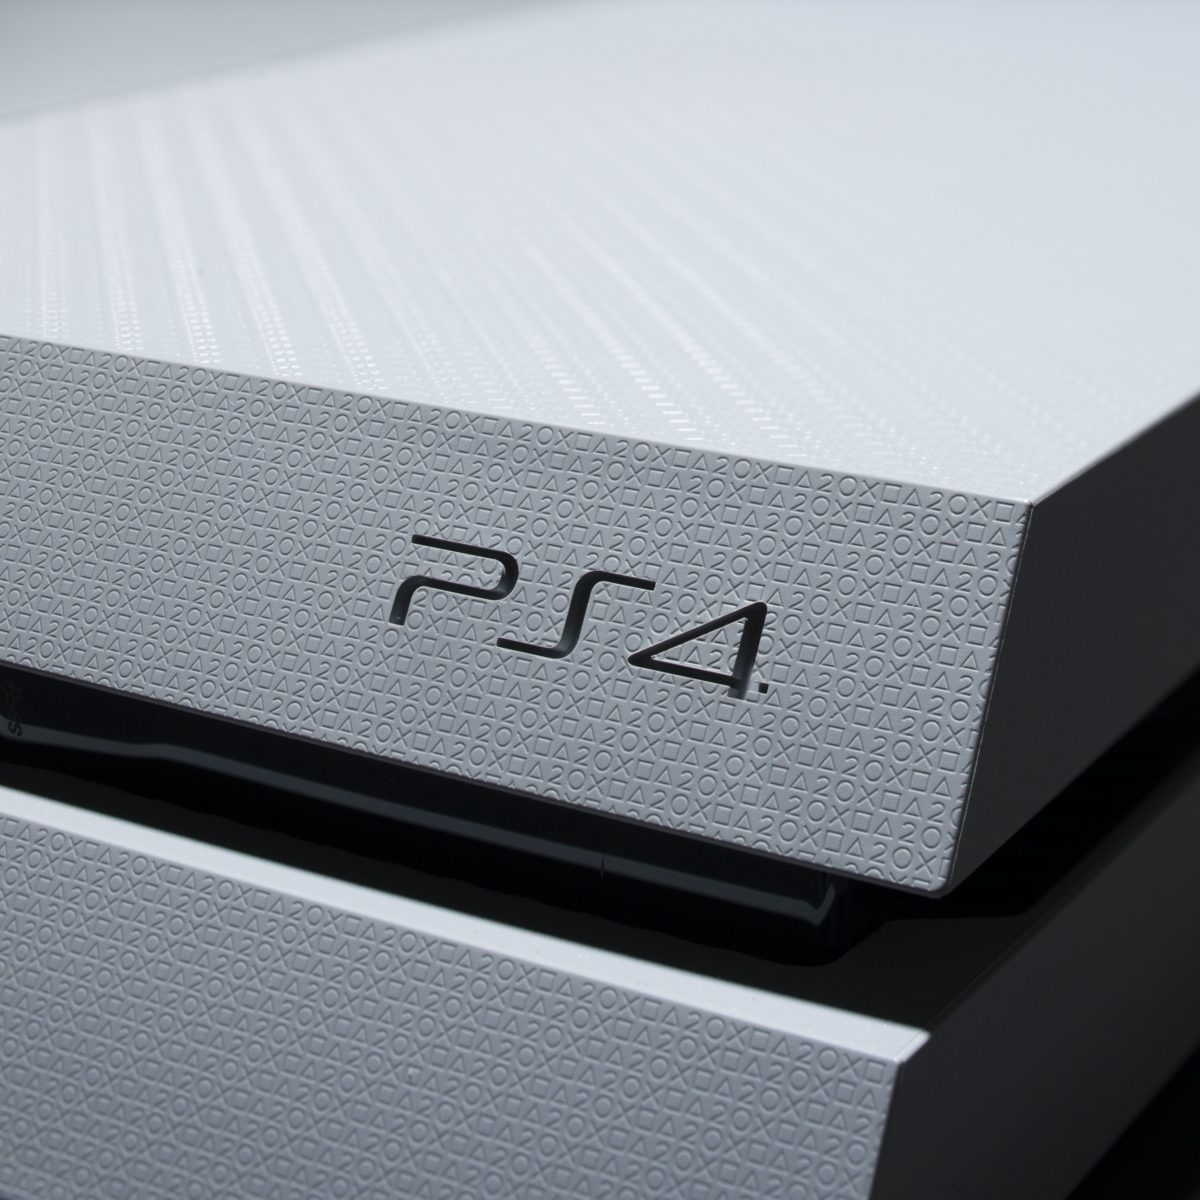 Download wallpaper 3415×3415 ps4, game console, sony, playstation 4 …